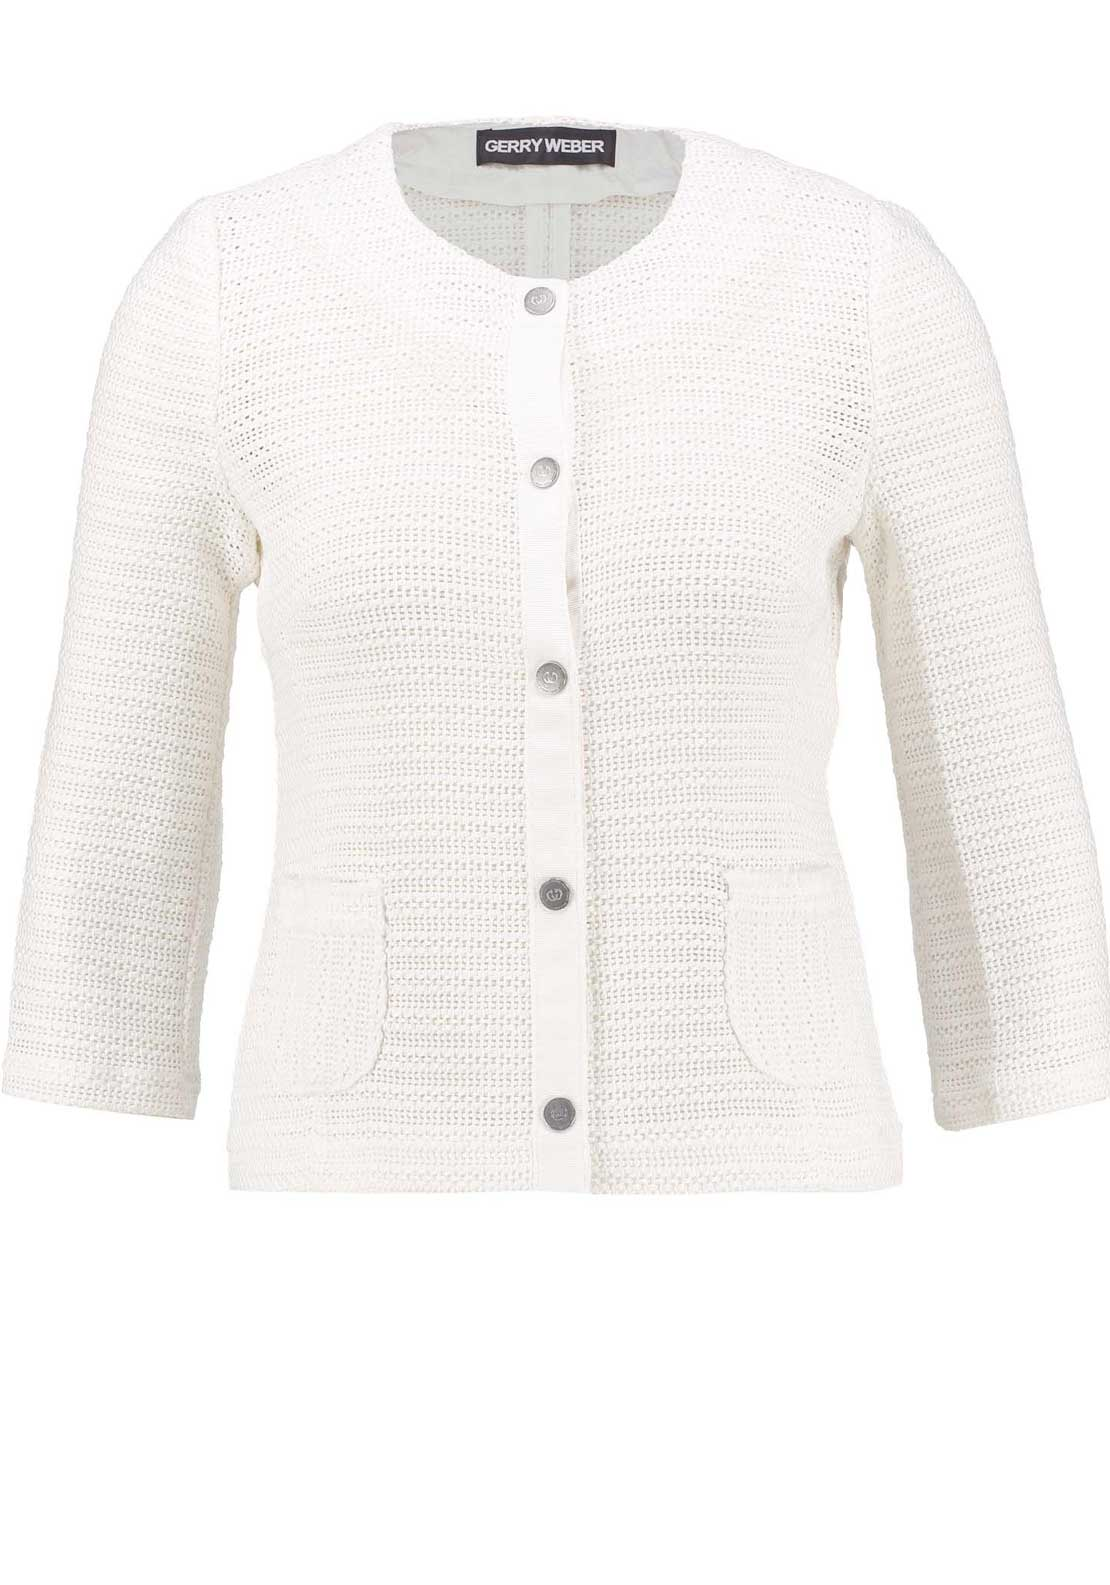 Gerry Weber Embossed Knit Jacket, White